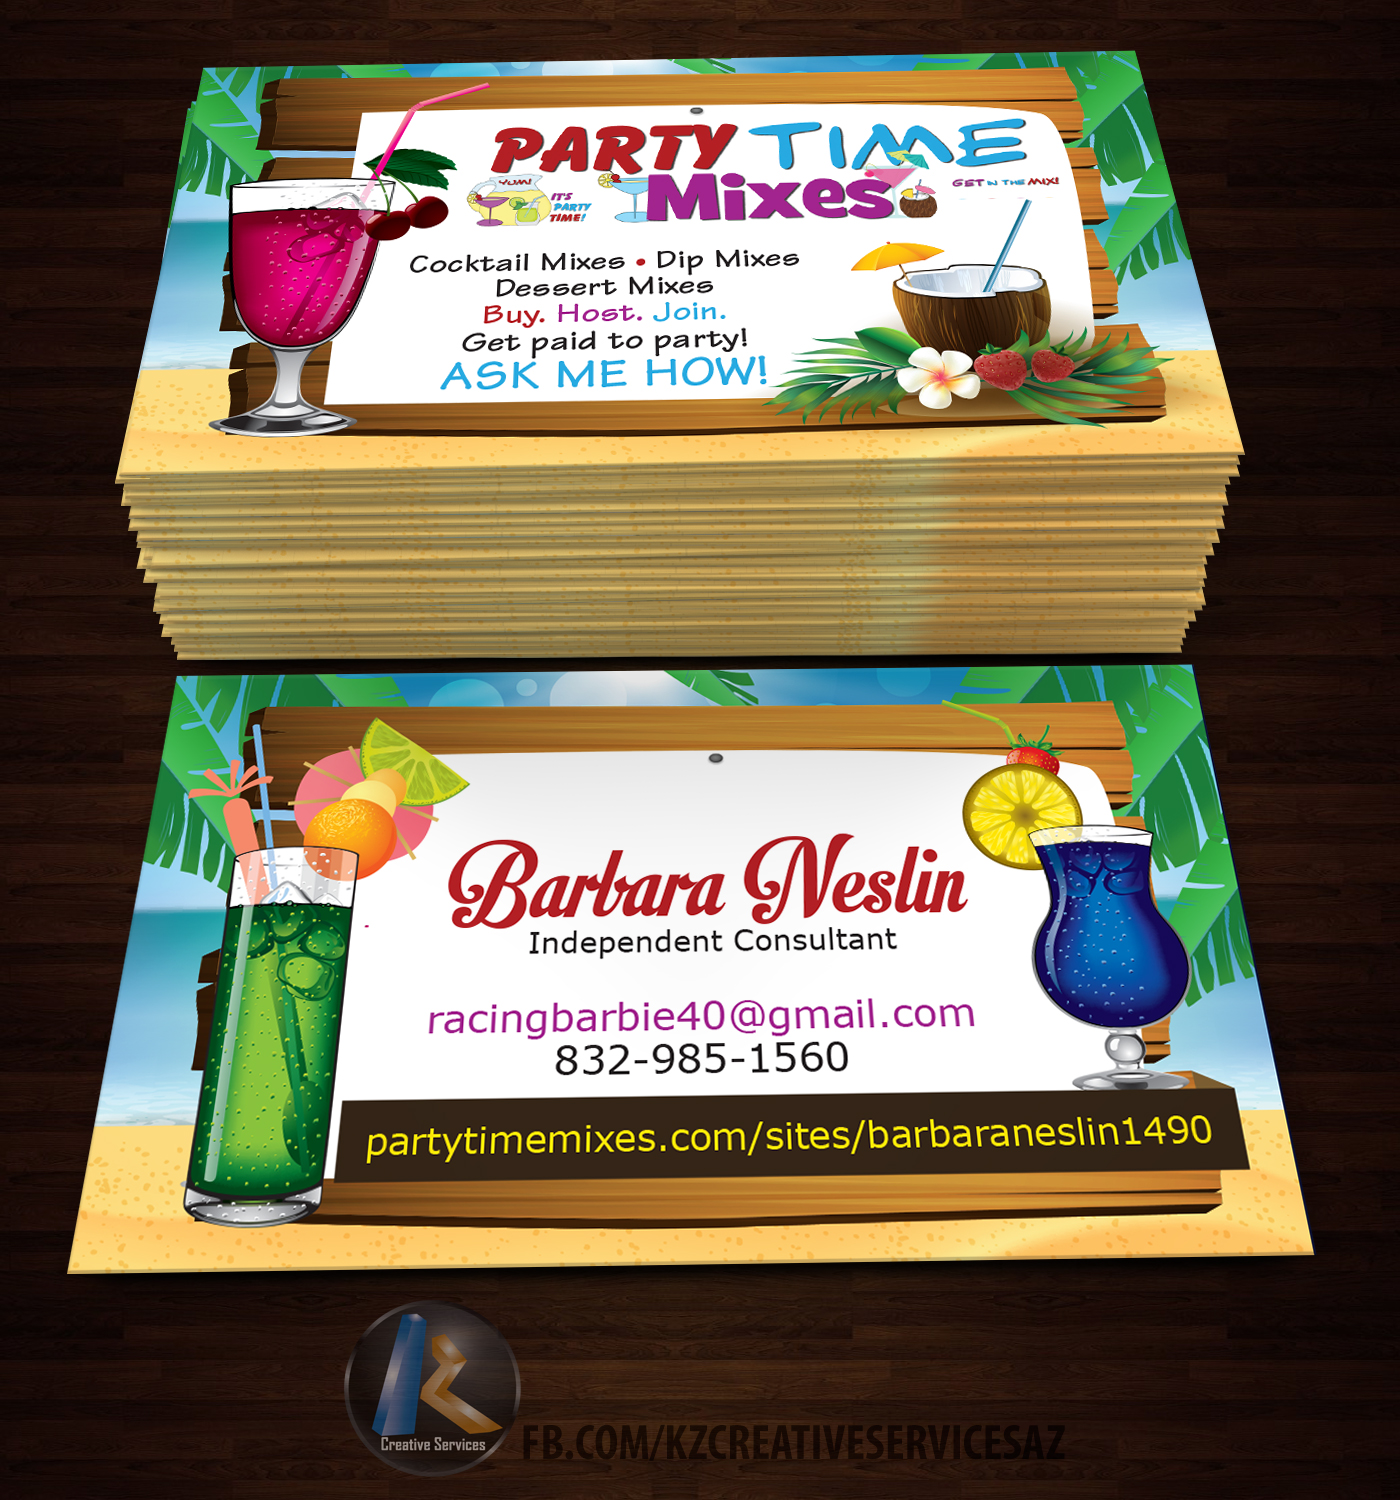 Party Time Mixes Business Cards style 1 · KZ Creative Services